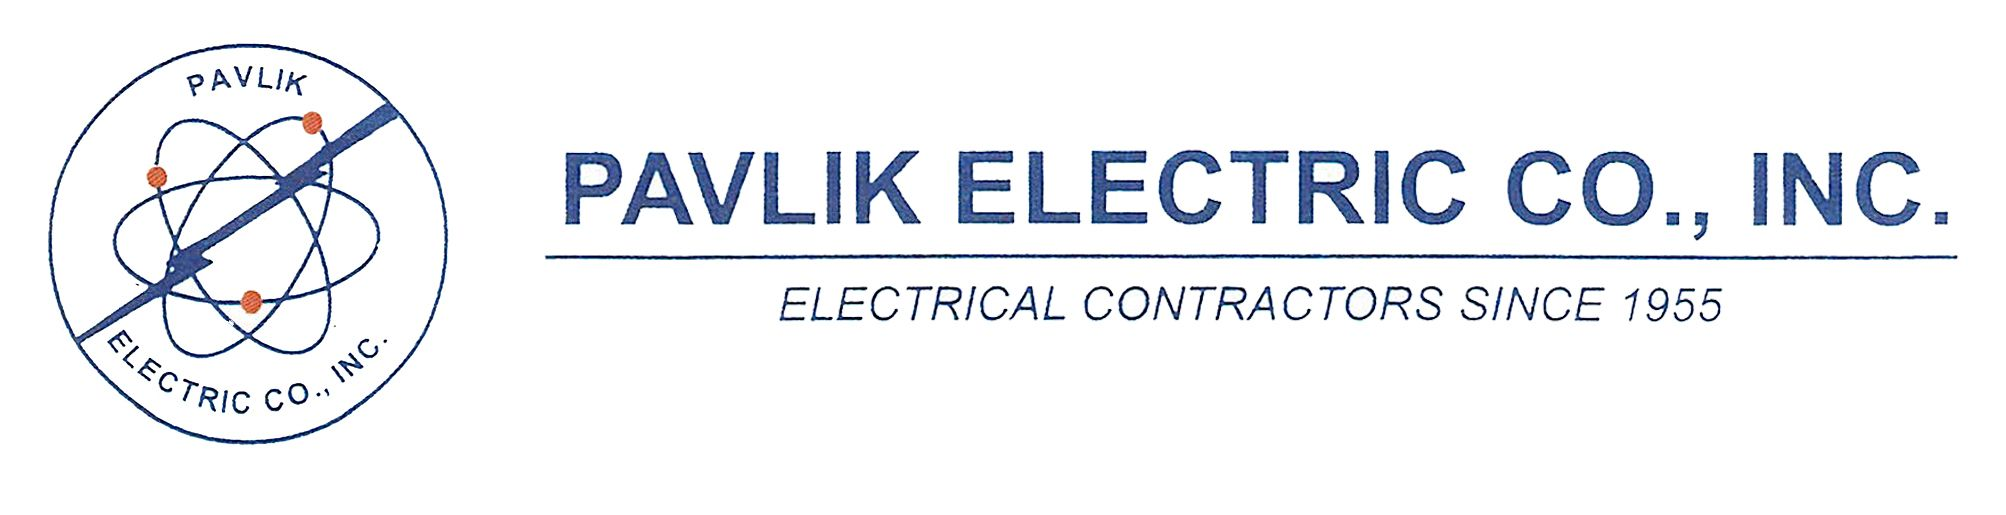 Pavlik Electric